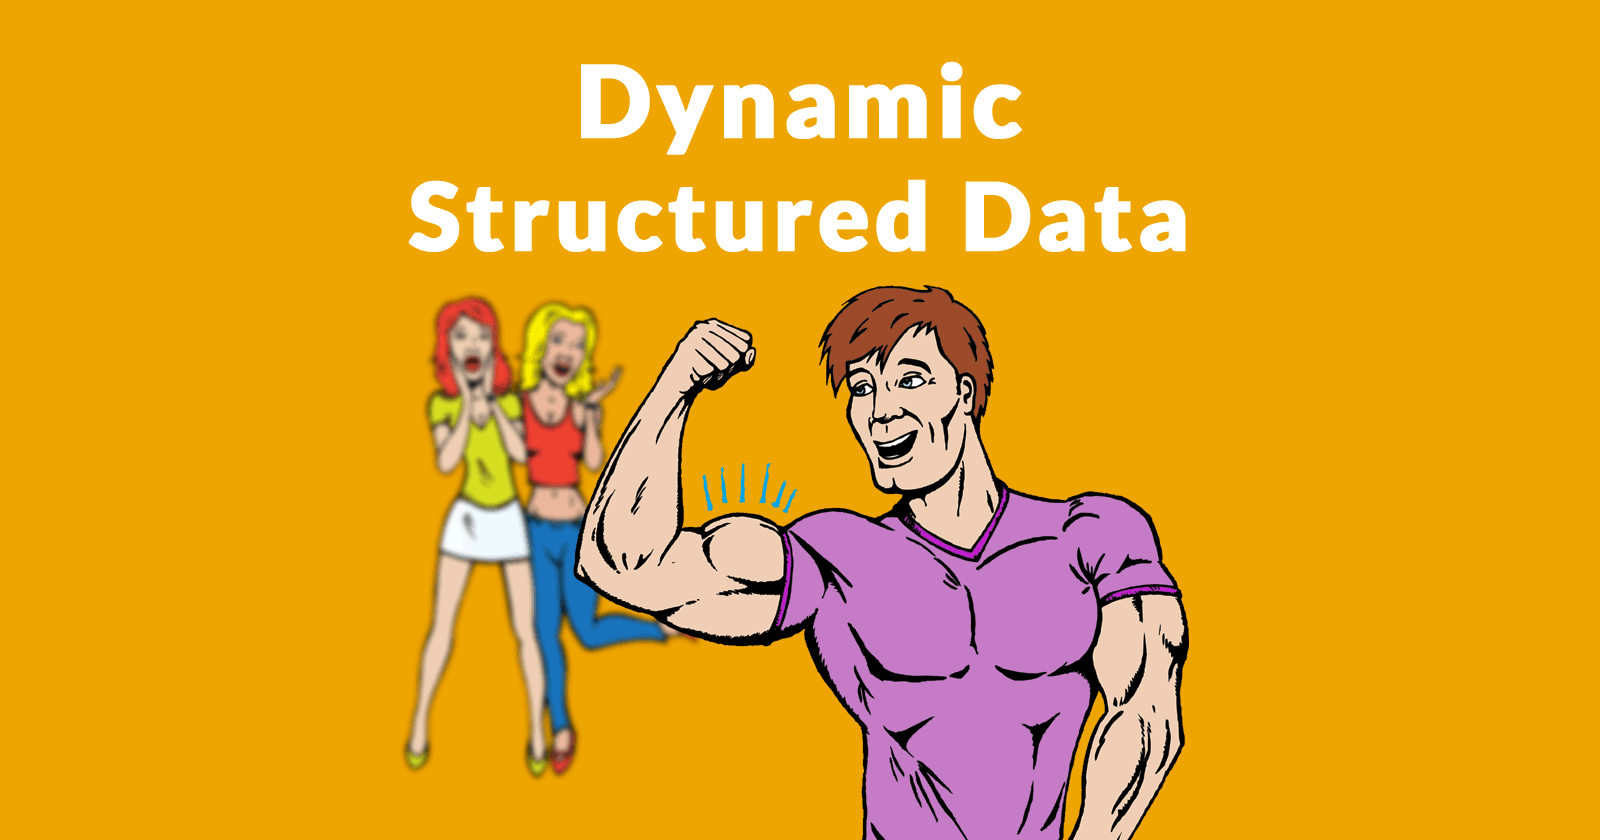 dynamic structured data 5e872cde40be6